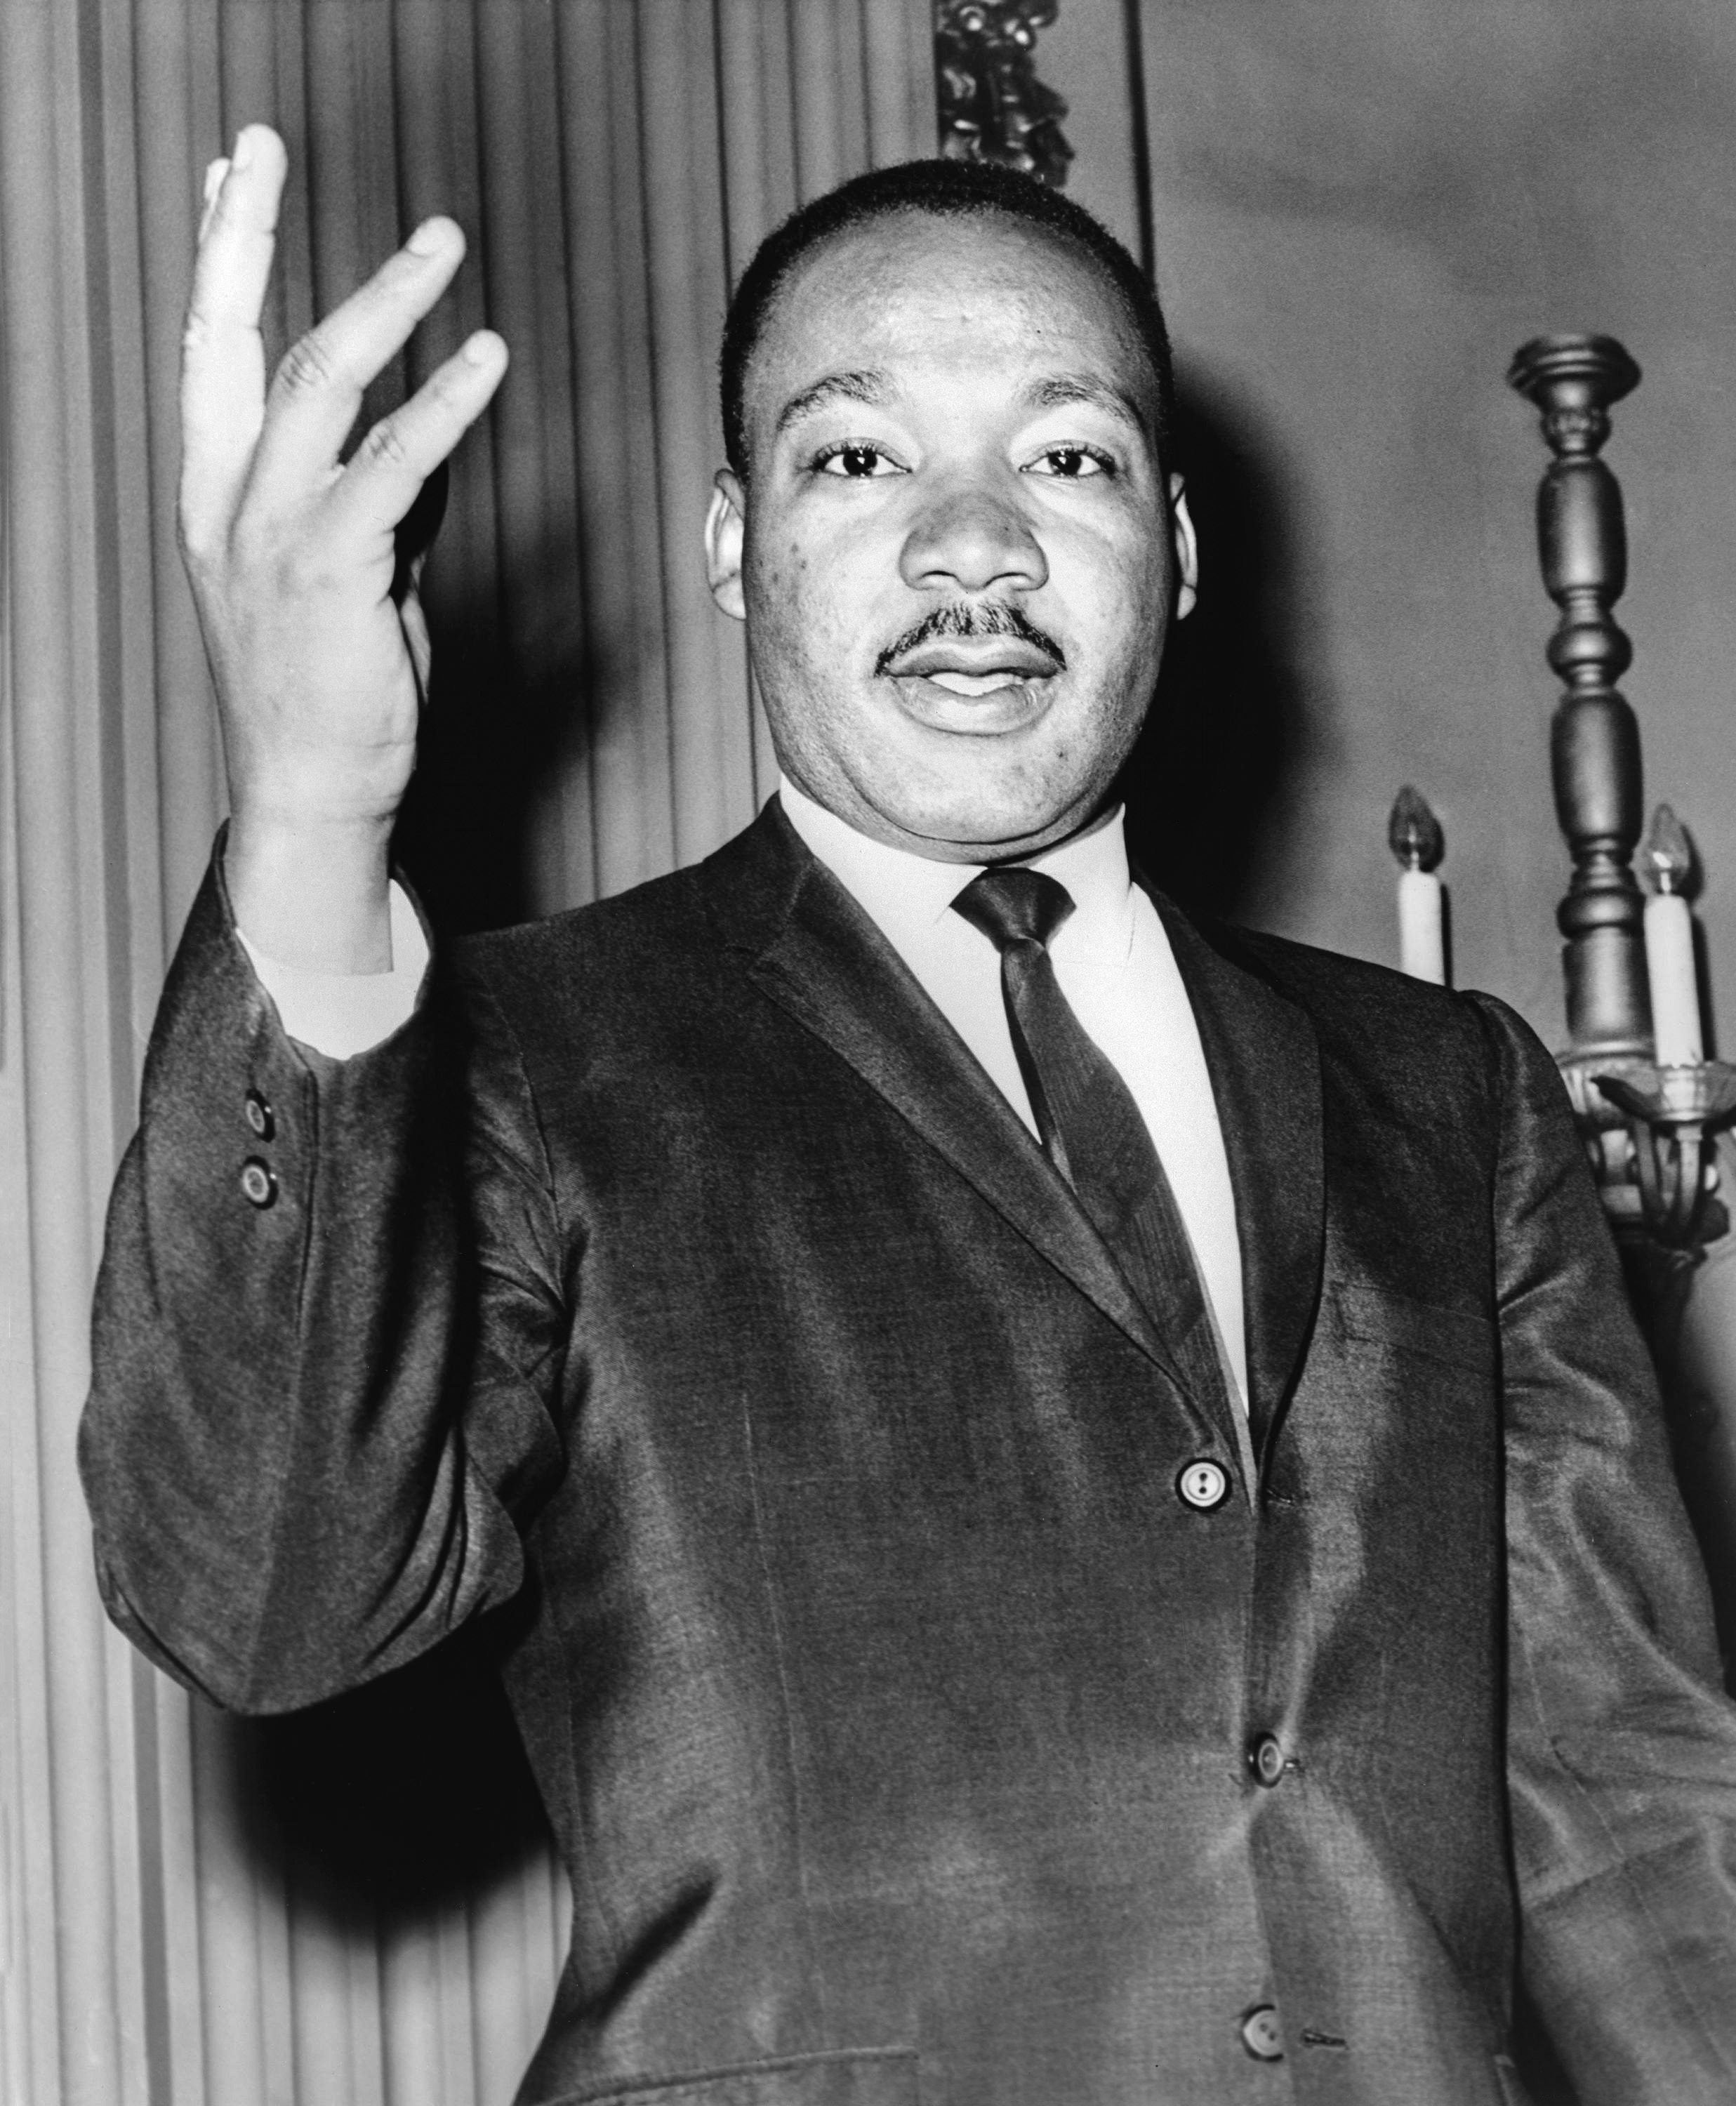 https://i1.wp.com/upload.wikimedia.org/wikipedia/commons/8/84/Martin_Luther_King_Jr_NYWTS.jpg